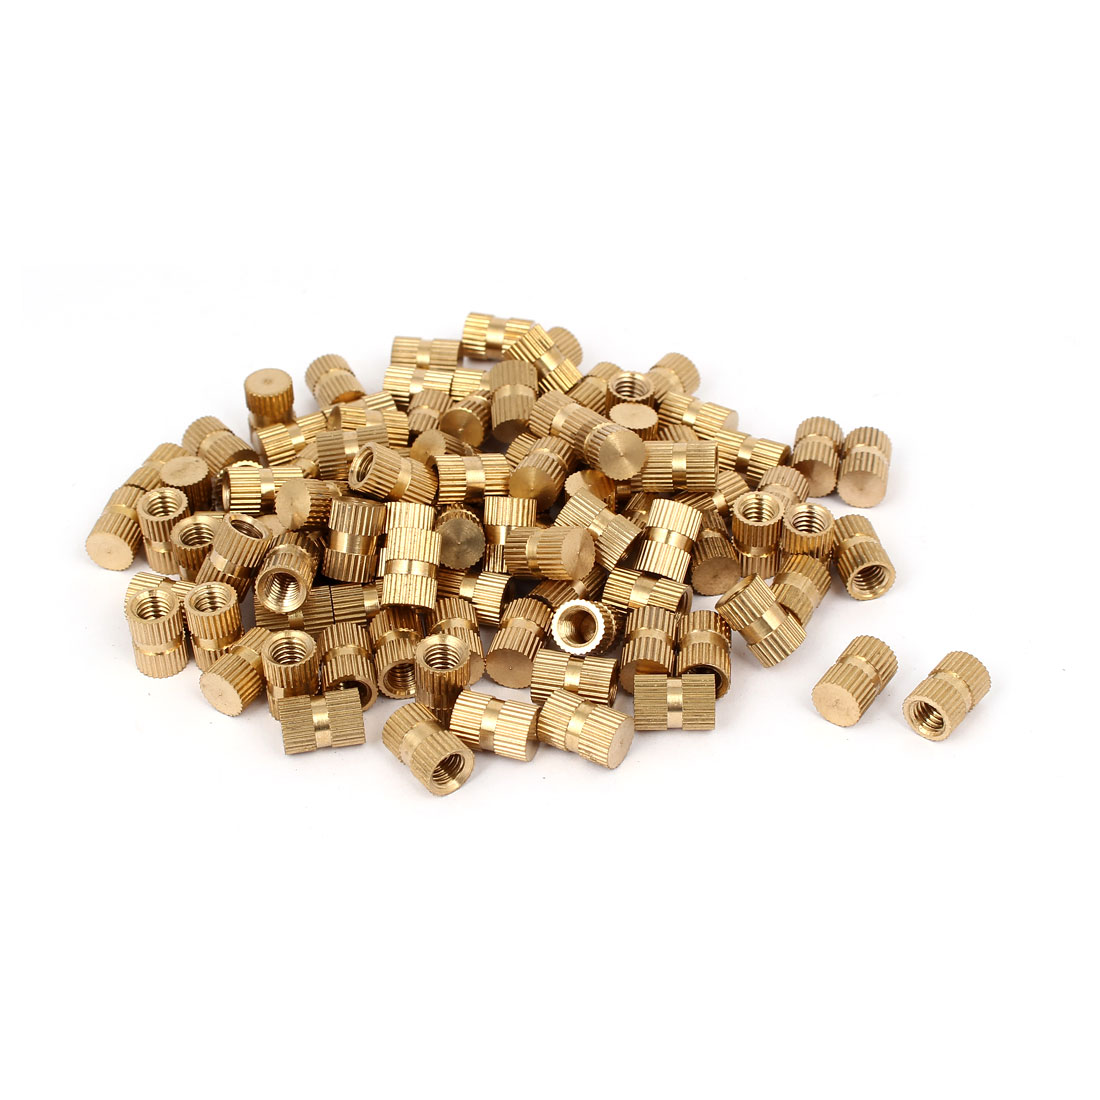 M6 x 12mm 8.3mm OD Brass Injection Molding Threaded Knurled Thumb Nut 100PCS